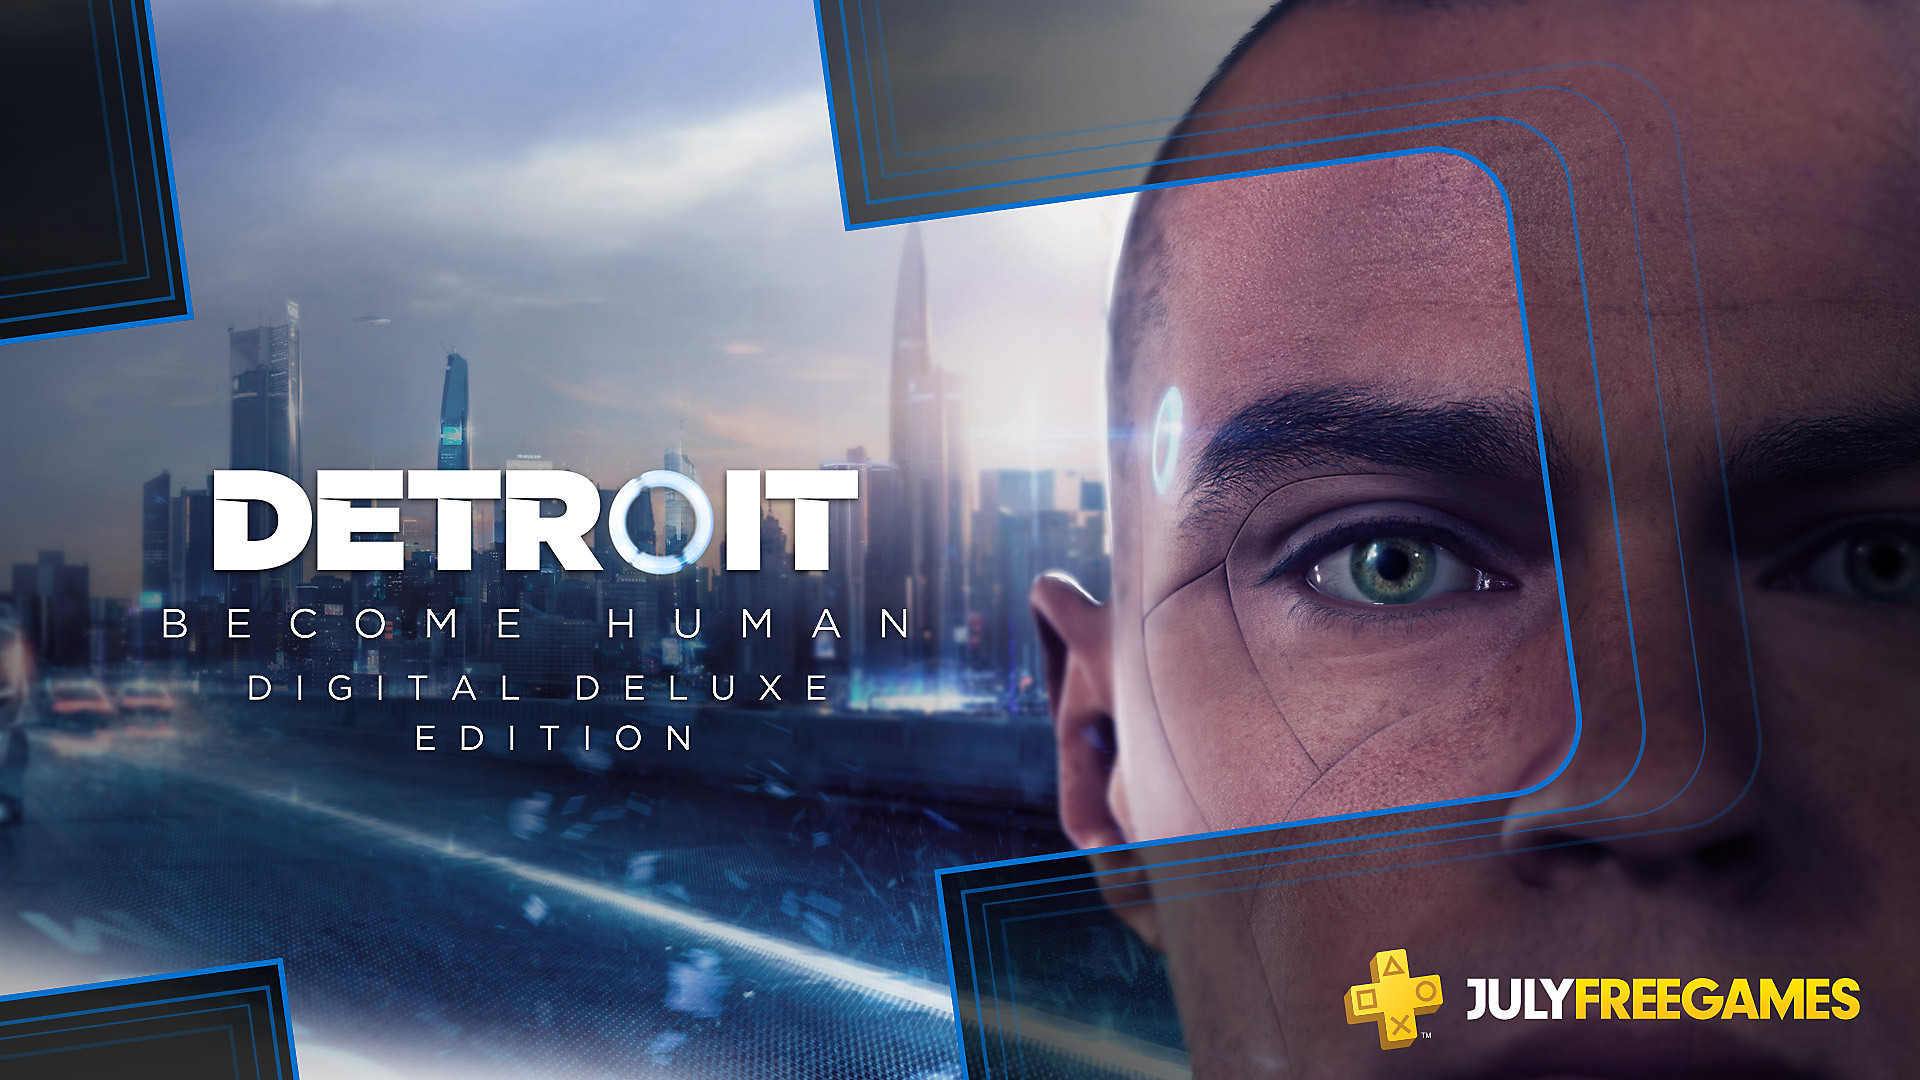 Click here to get Detroit Become Human free from the PlayStation Store for PlayStation Plus members